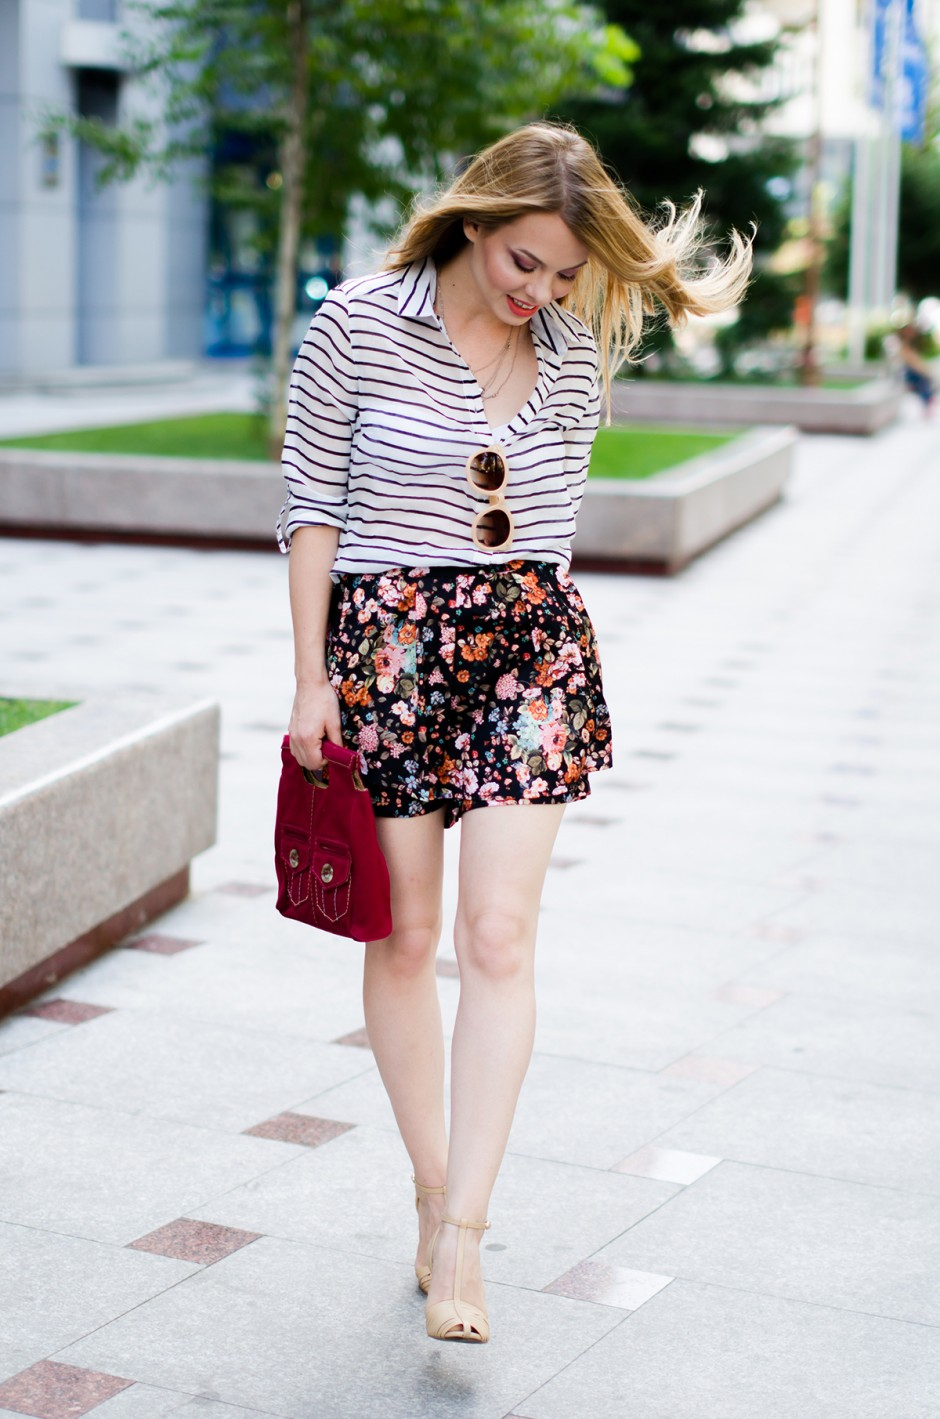 stradivarius-floral-skirt-striped-shirt-zerouv-sunglasses-outfit-fashion-zara-beige-sandals (2)